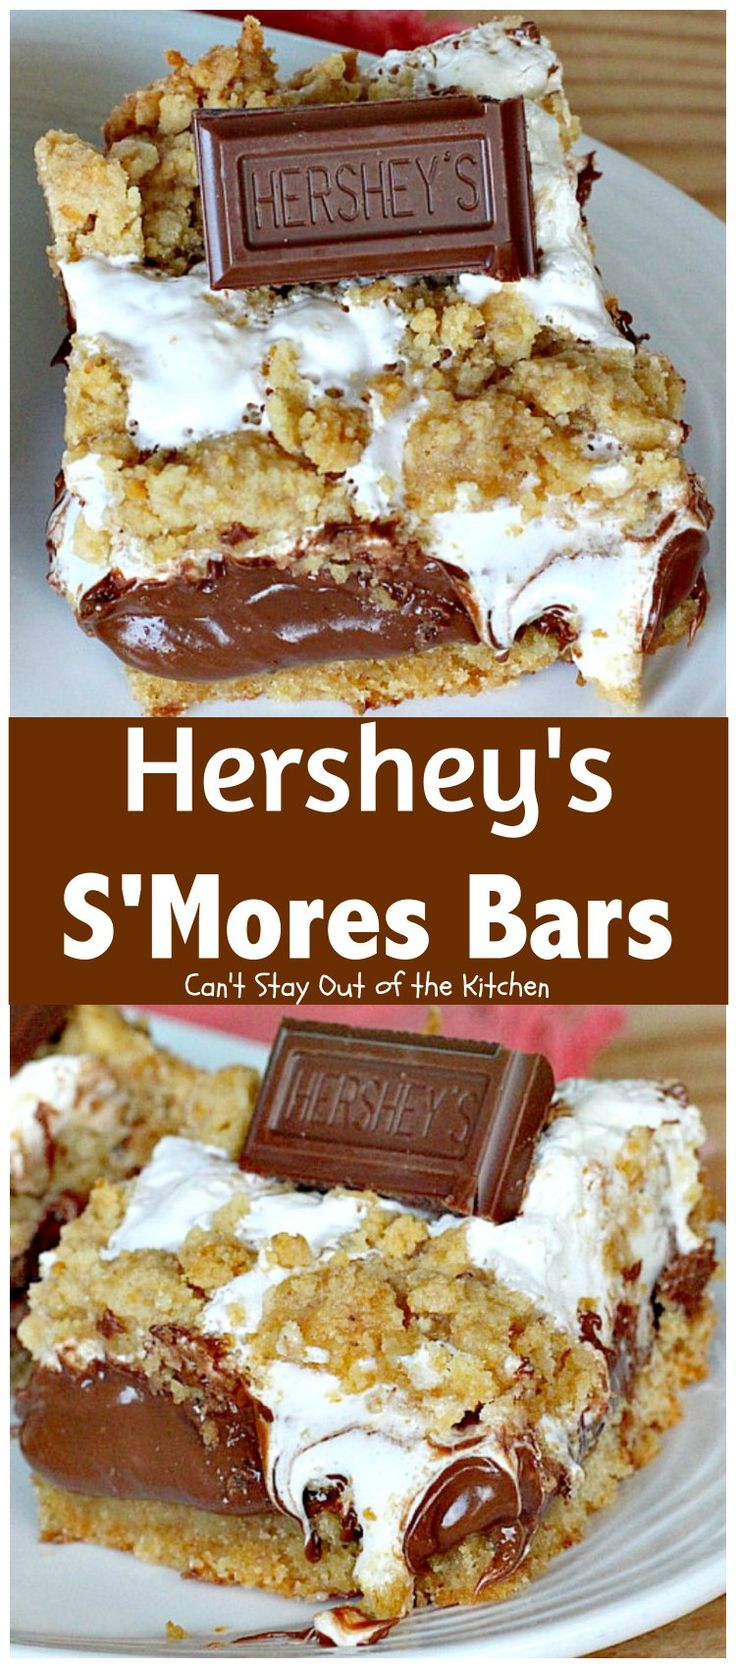 Hershey's S'Mores Bars | Can't Stay Out of the Kitchen | these outrageous…